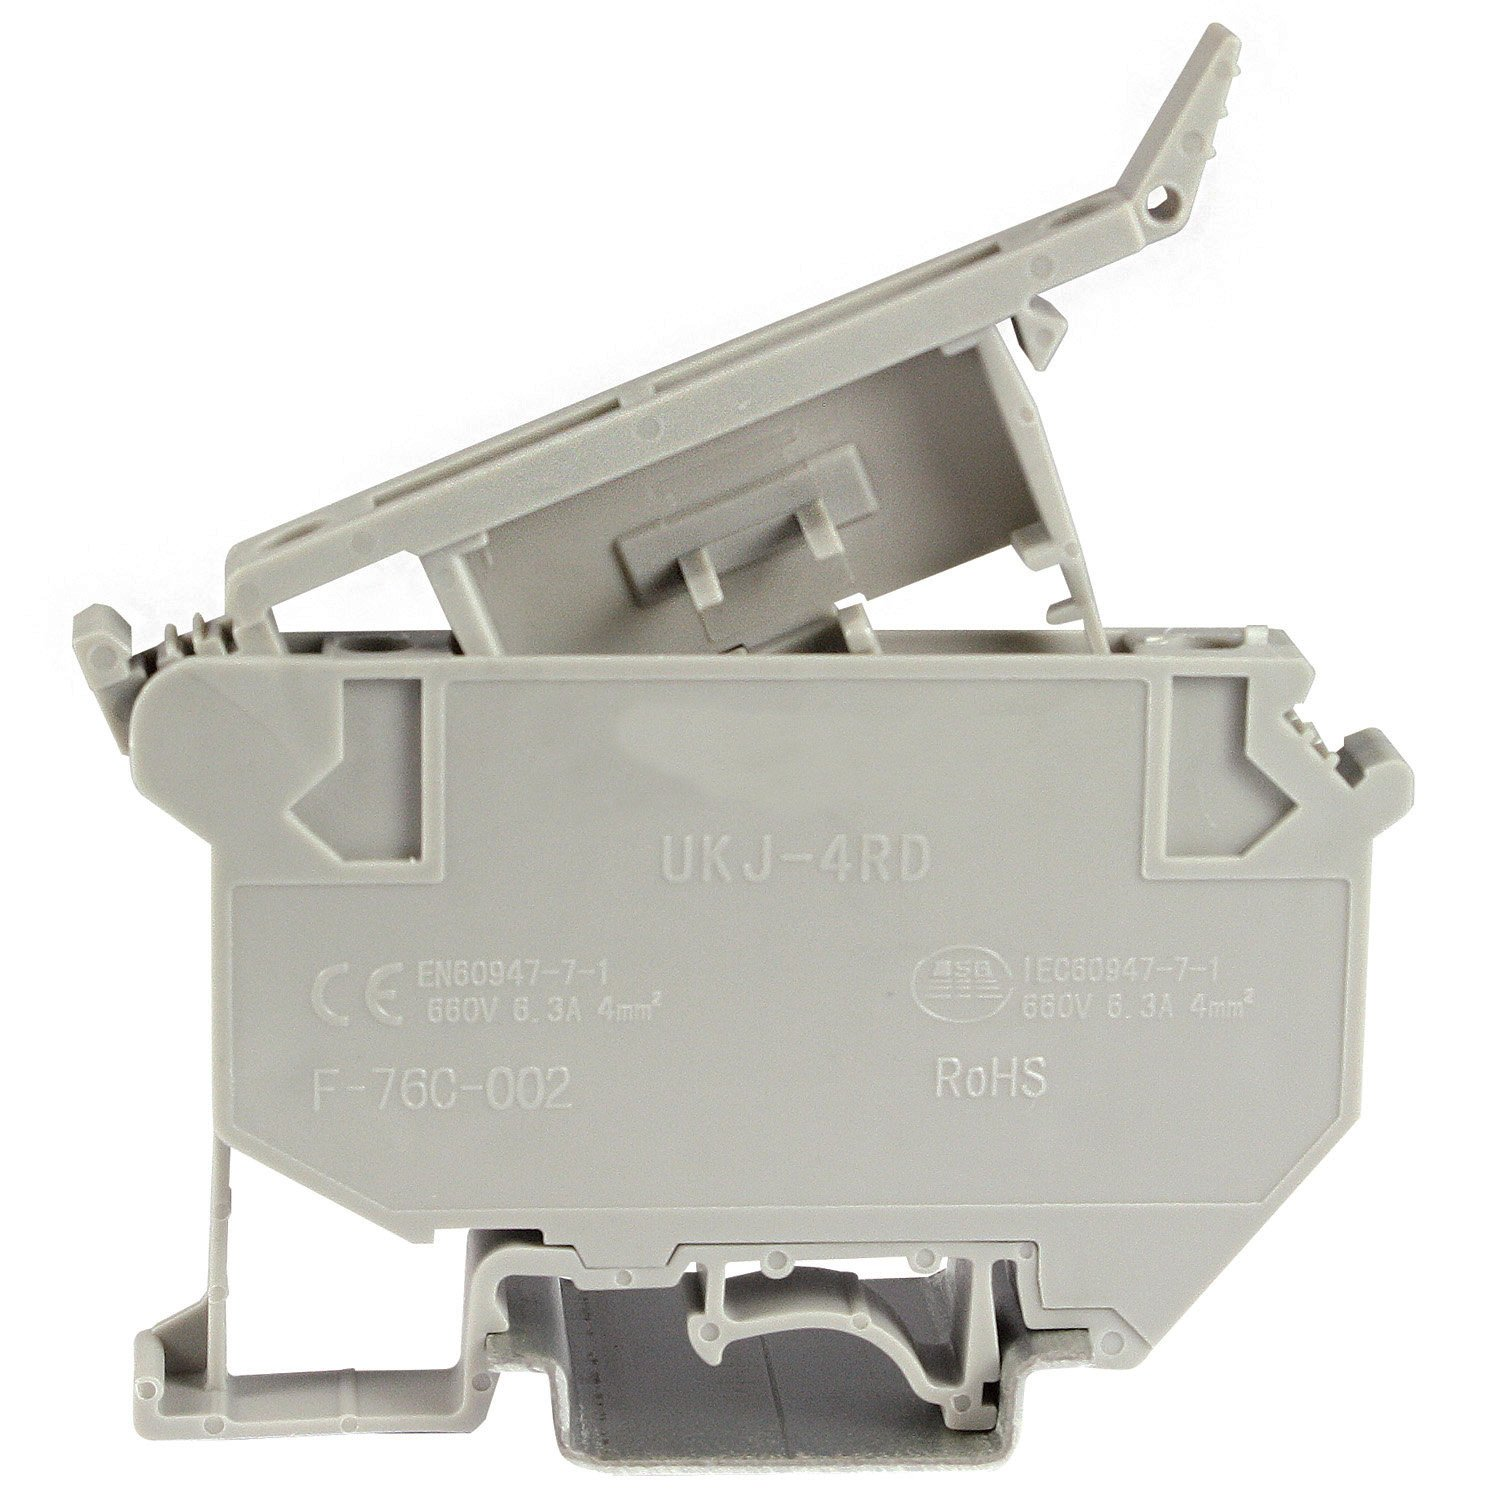 ASI ASIUK5HESI DIN Rail Fuse Disconnect Terminal Block, Screw Clamp, 5 mm x 20 mm, 8 mm Wide, 12 Amp, 600V, 26 AWG to 10 AWG (Pack of 50)